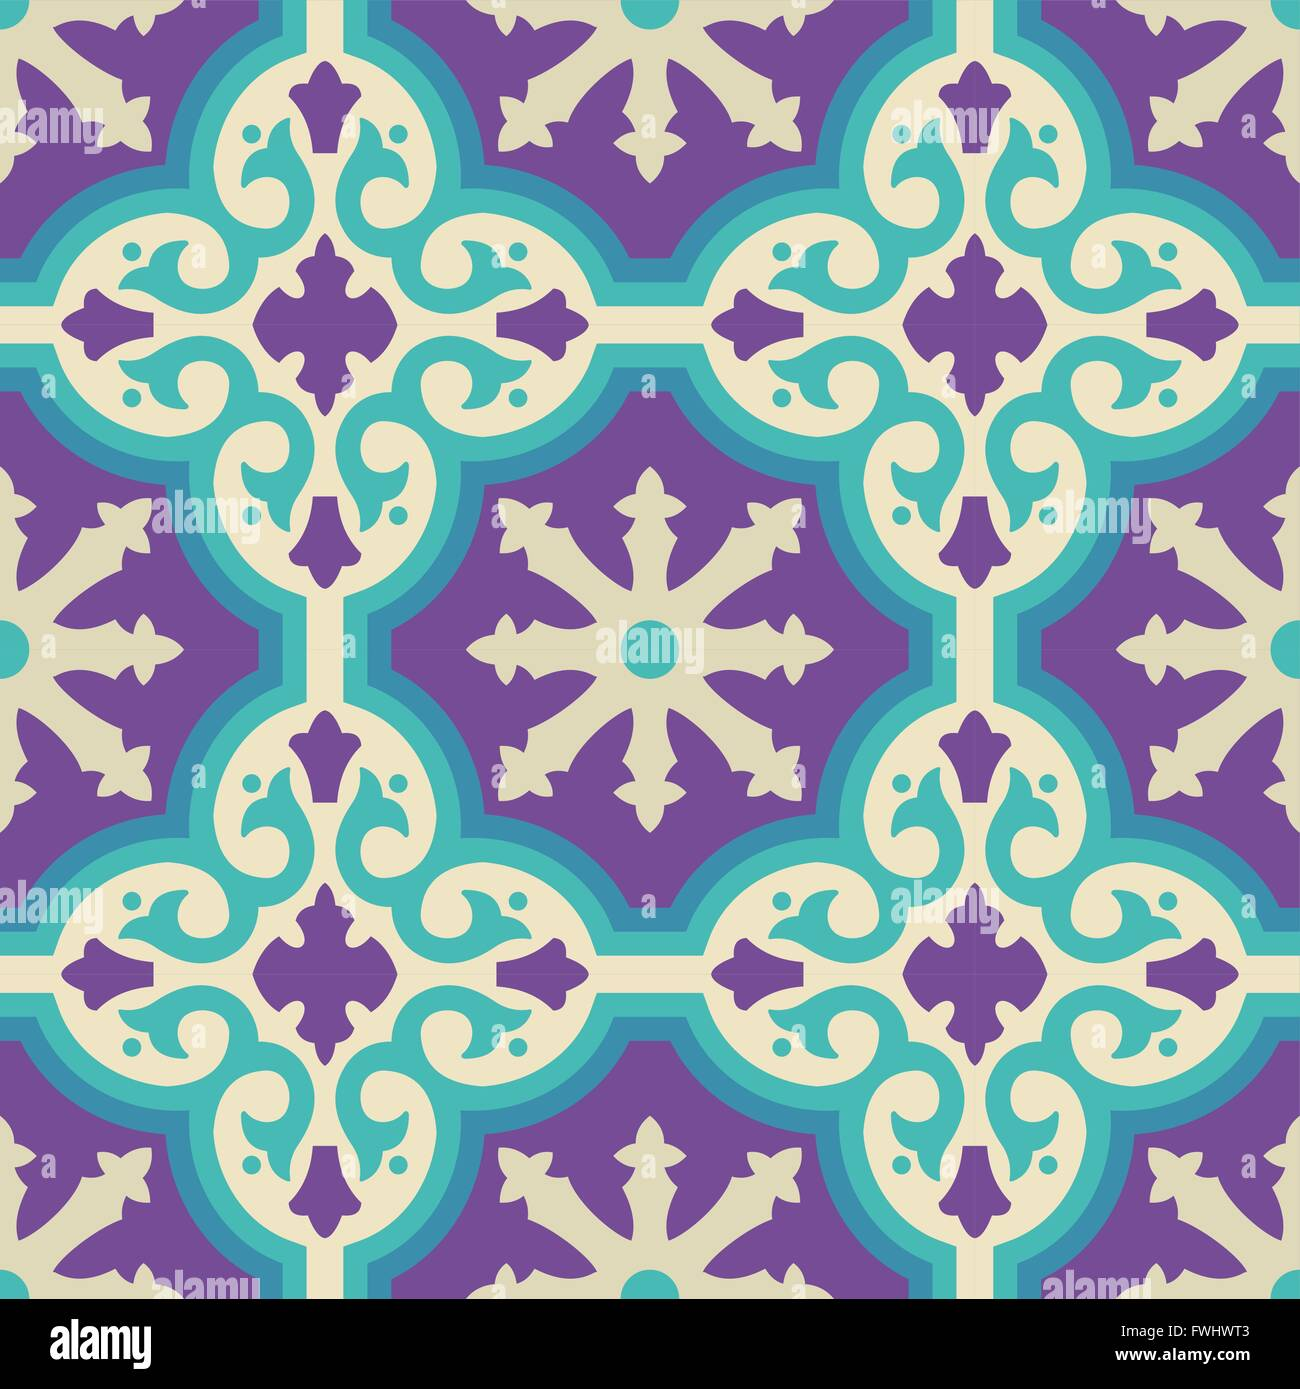 Vintage moroccan ceramic floor tile seamless pattern with geometric ...